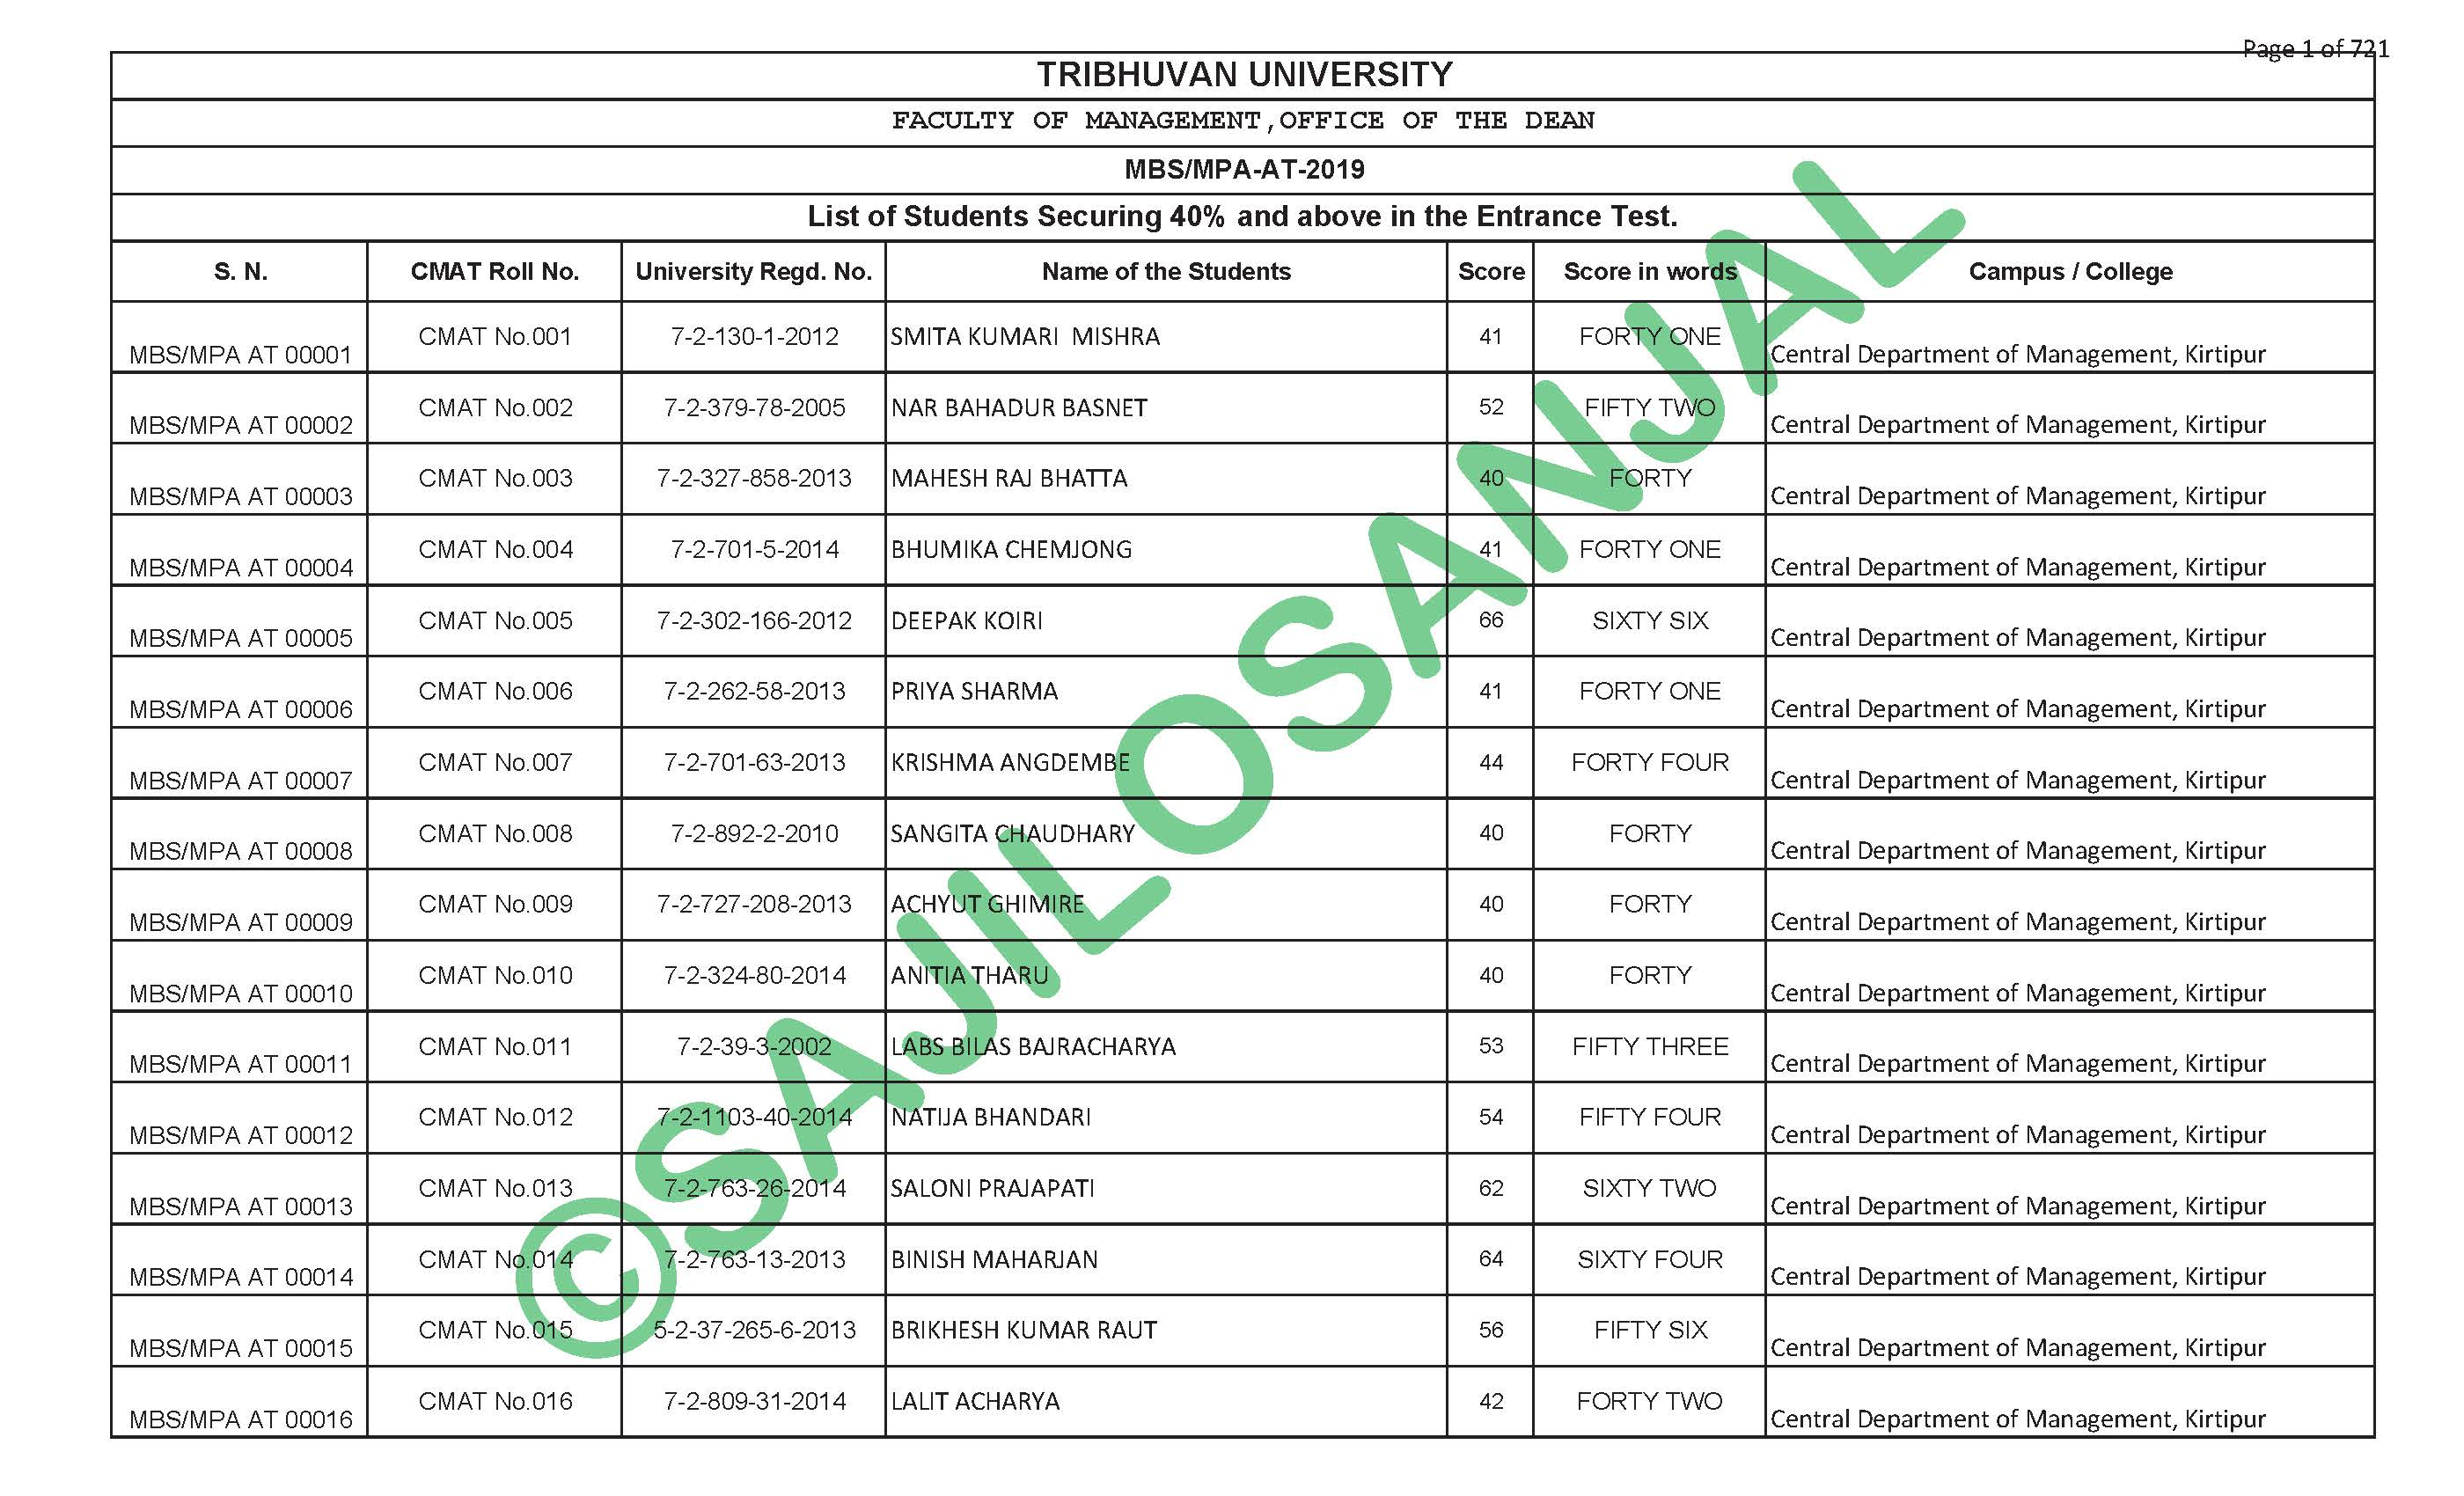 Entrance Test result,  MBS Entrance Exam Result, MBS Entrance Exam Result, TU  MBS Entrance Exam Result, TU MBS Entrance Exam Result, MBS Exam Result, MBS  Exam Result, TU  MBS  Exam Result, TU MBS Exam Result, TU Exam Result, Tribhuvan University Exam Result, Tribhuvan University TU  MPA  Exam Result, TU MPA Exam Result, MPA Entrance Exam Result, MPA Entrance Exam Result, TU  MPA Entrance Exam Result, TU MPA Entrance Exam Result, MPAExam Result,